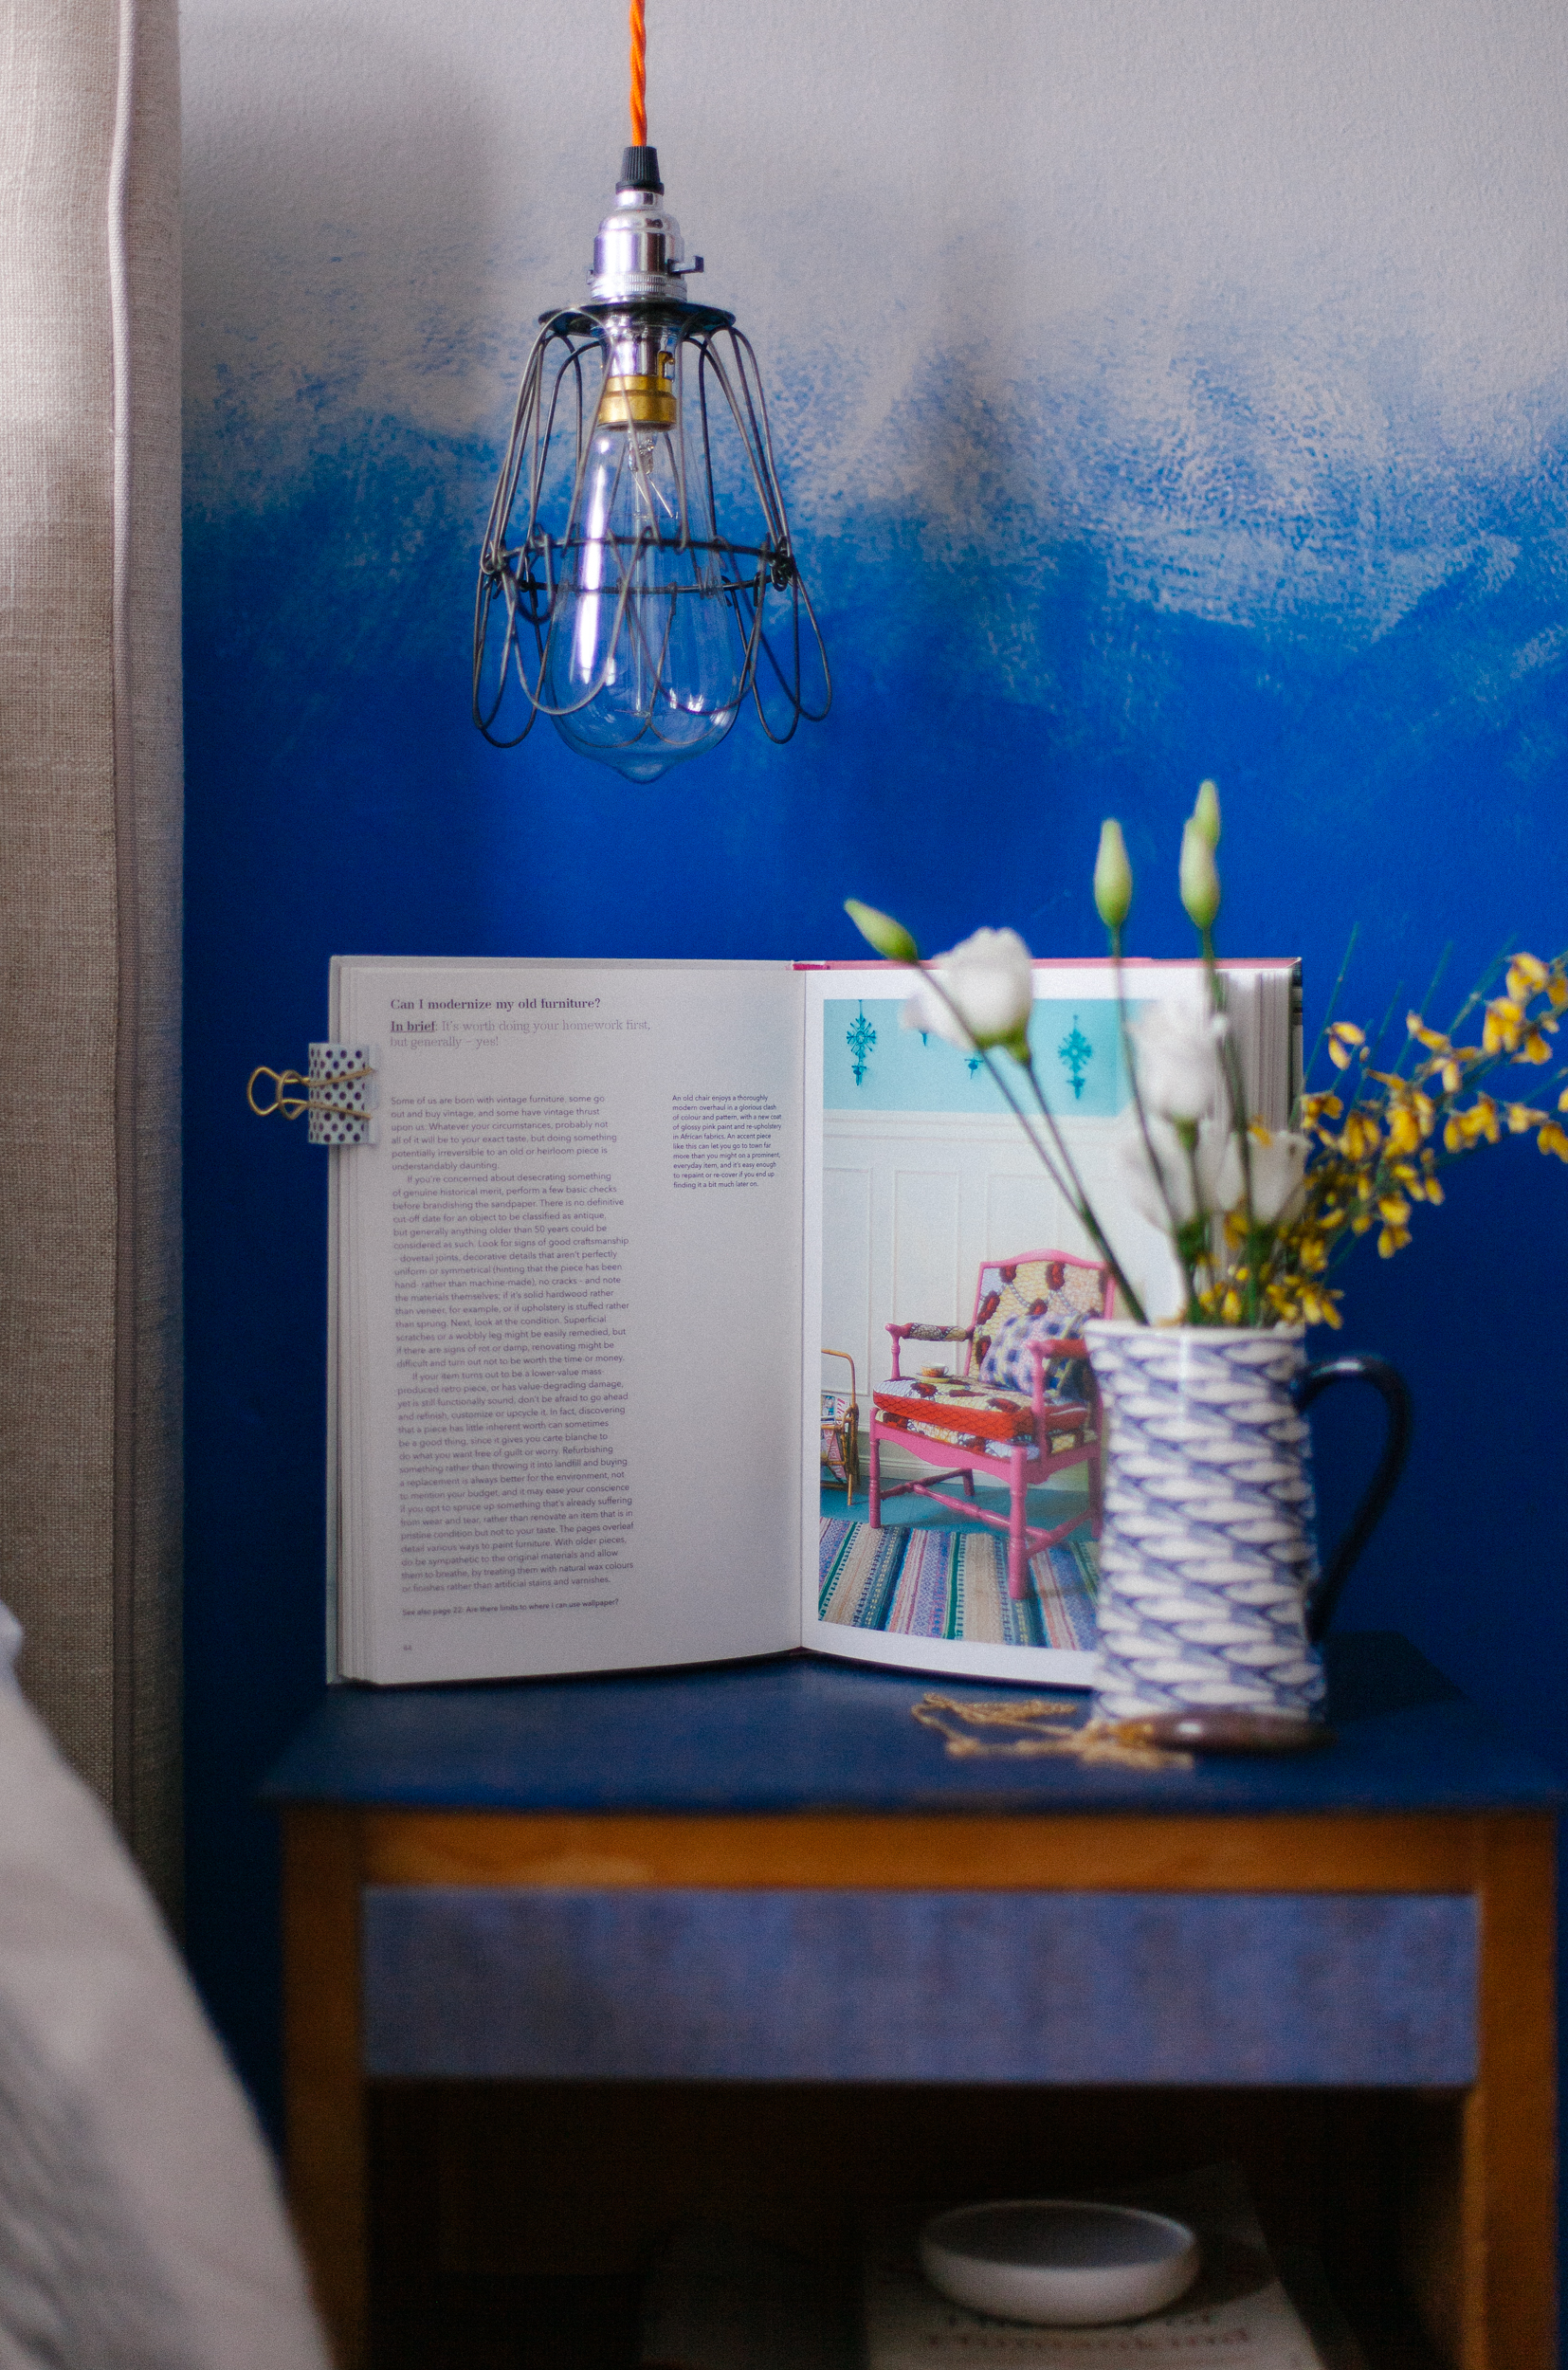 My Bedroom is an Office by Joanna Thornhill p44-45.jpg Modernise Old Furniture